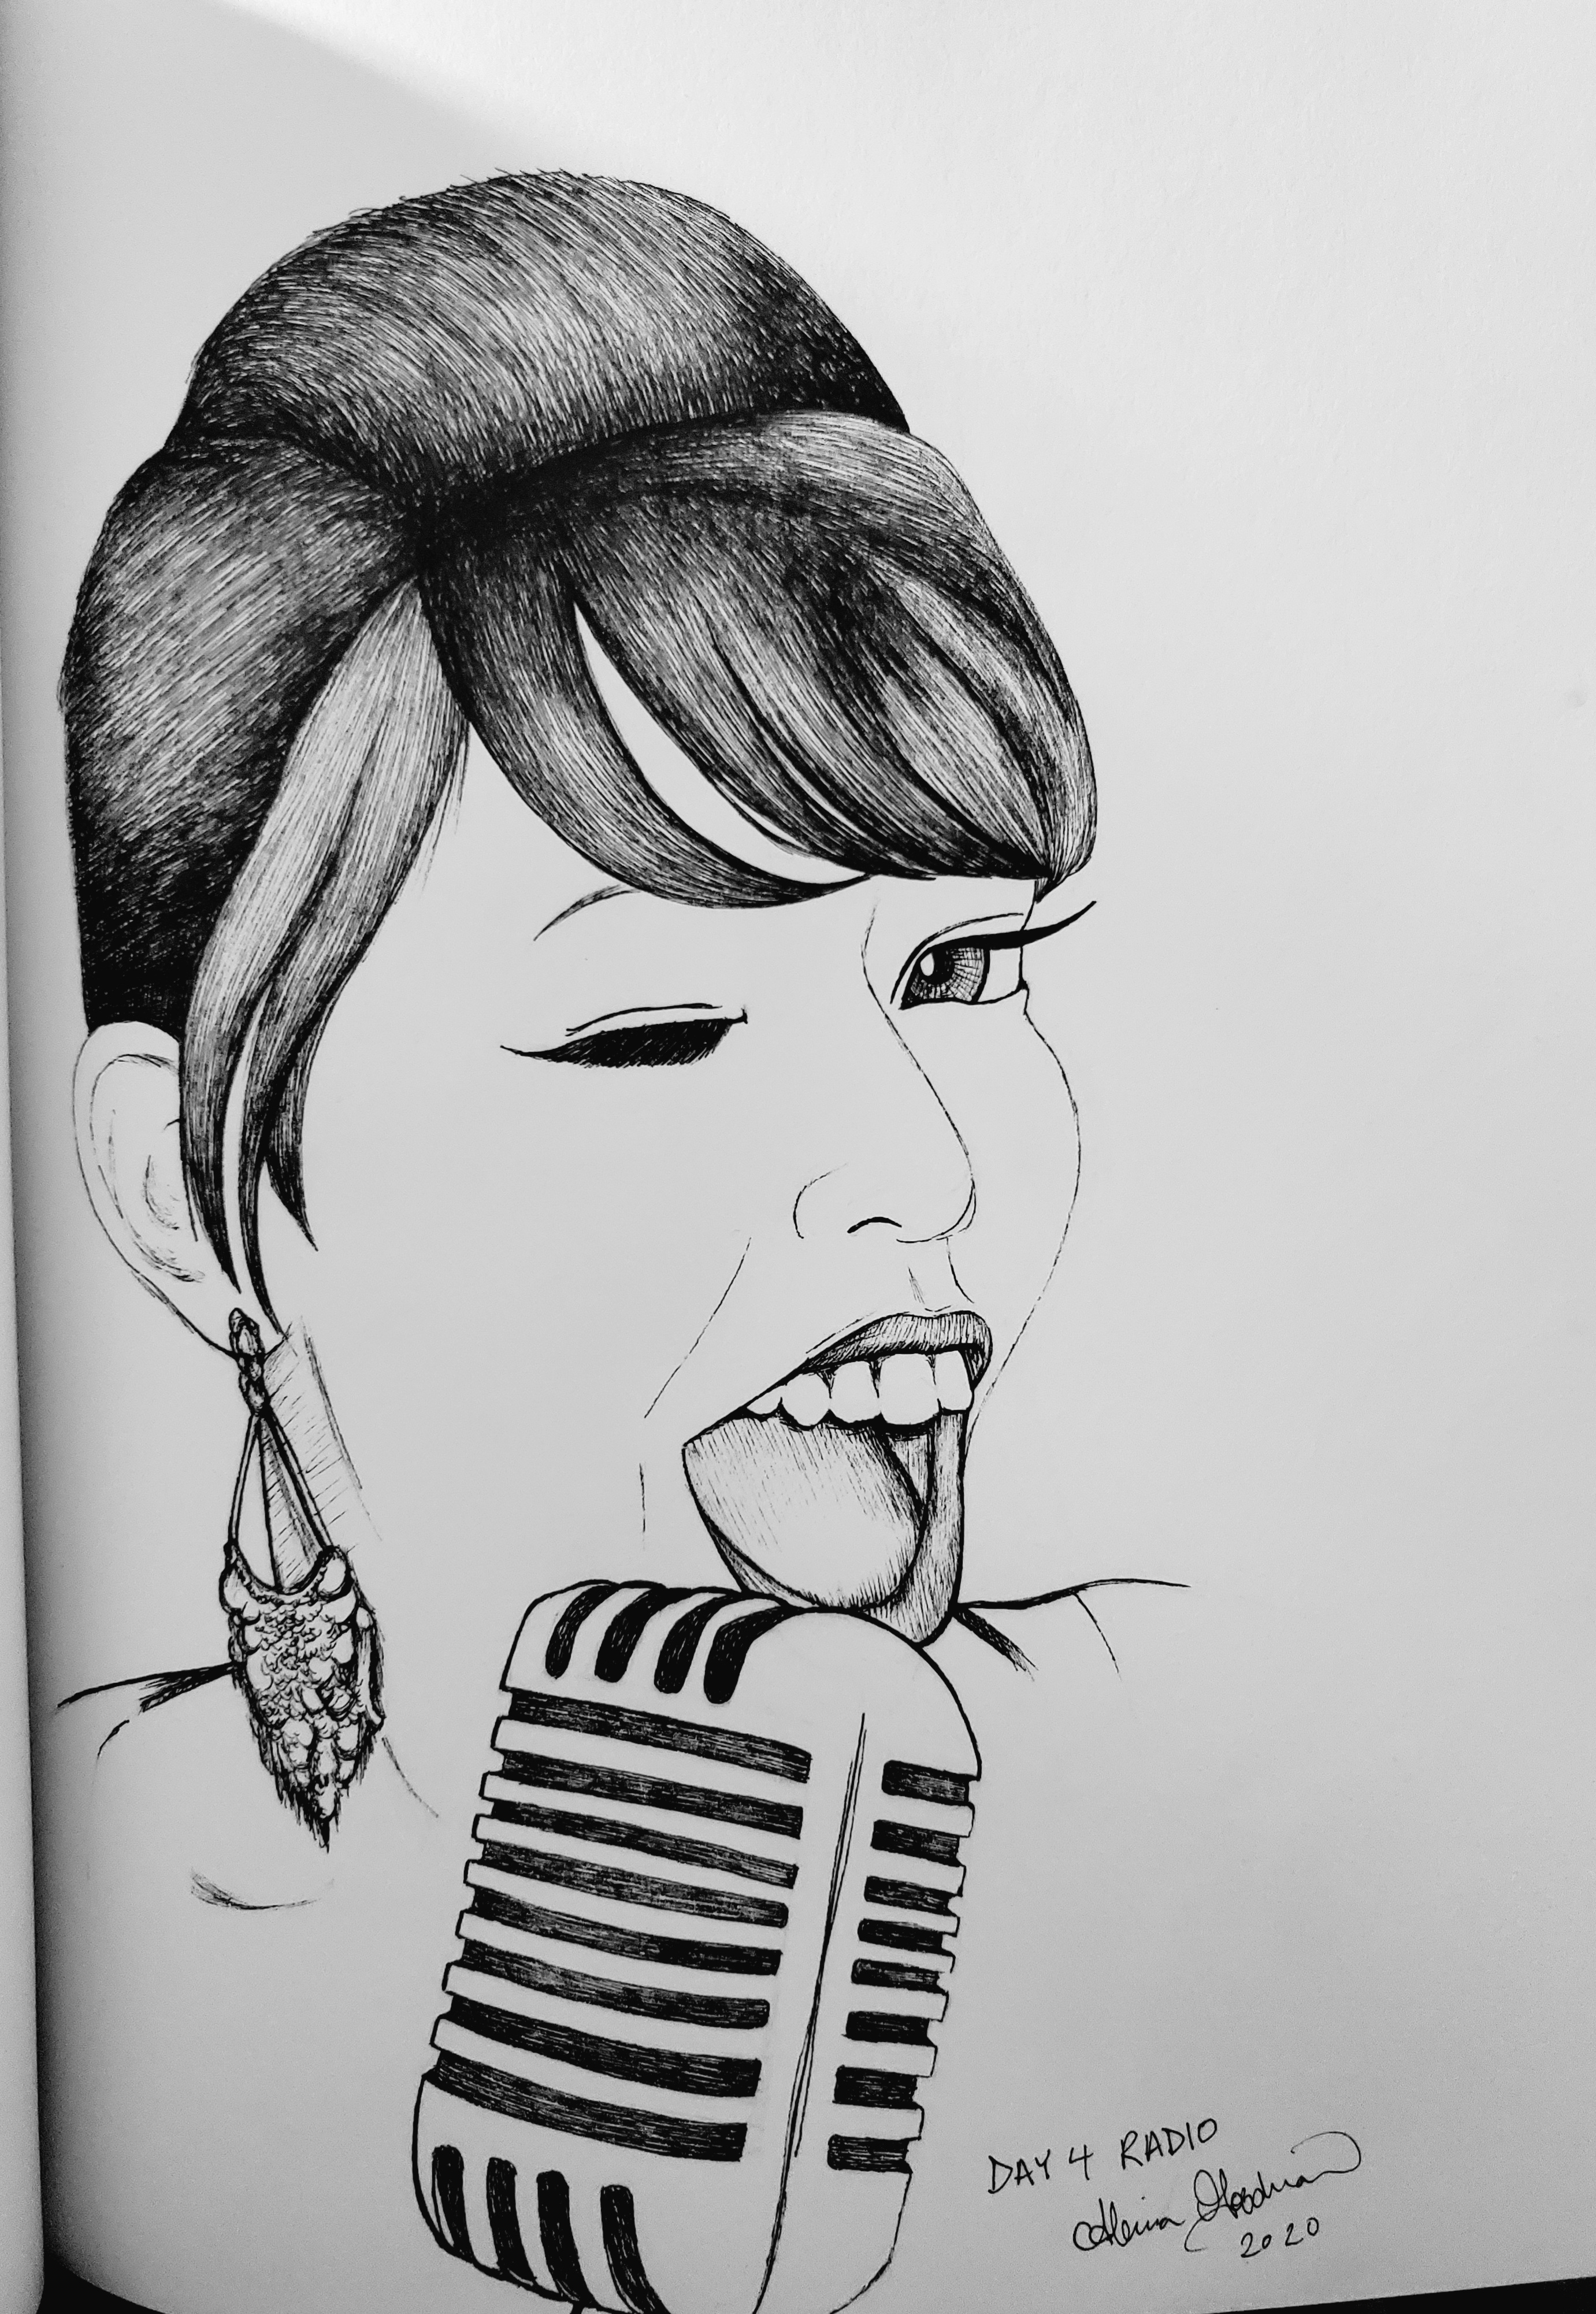 Inktober Day 4 Radio 2020 vintage microphone woman singing ink drawing by alecia goodman to present